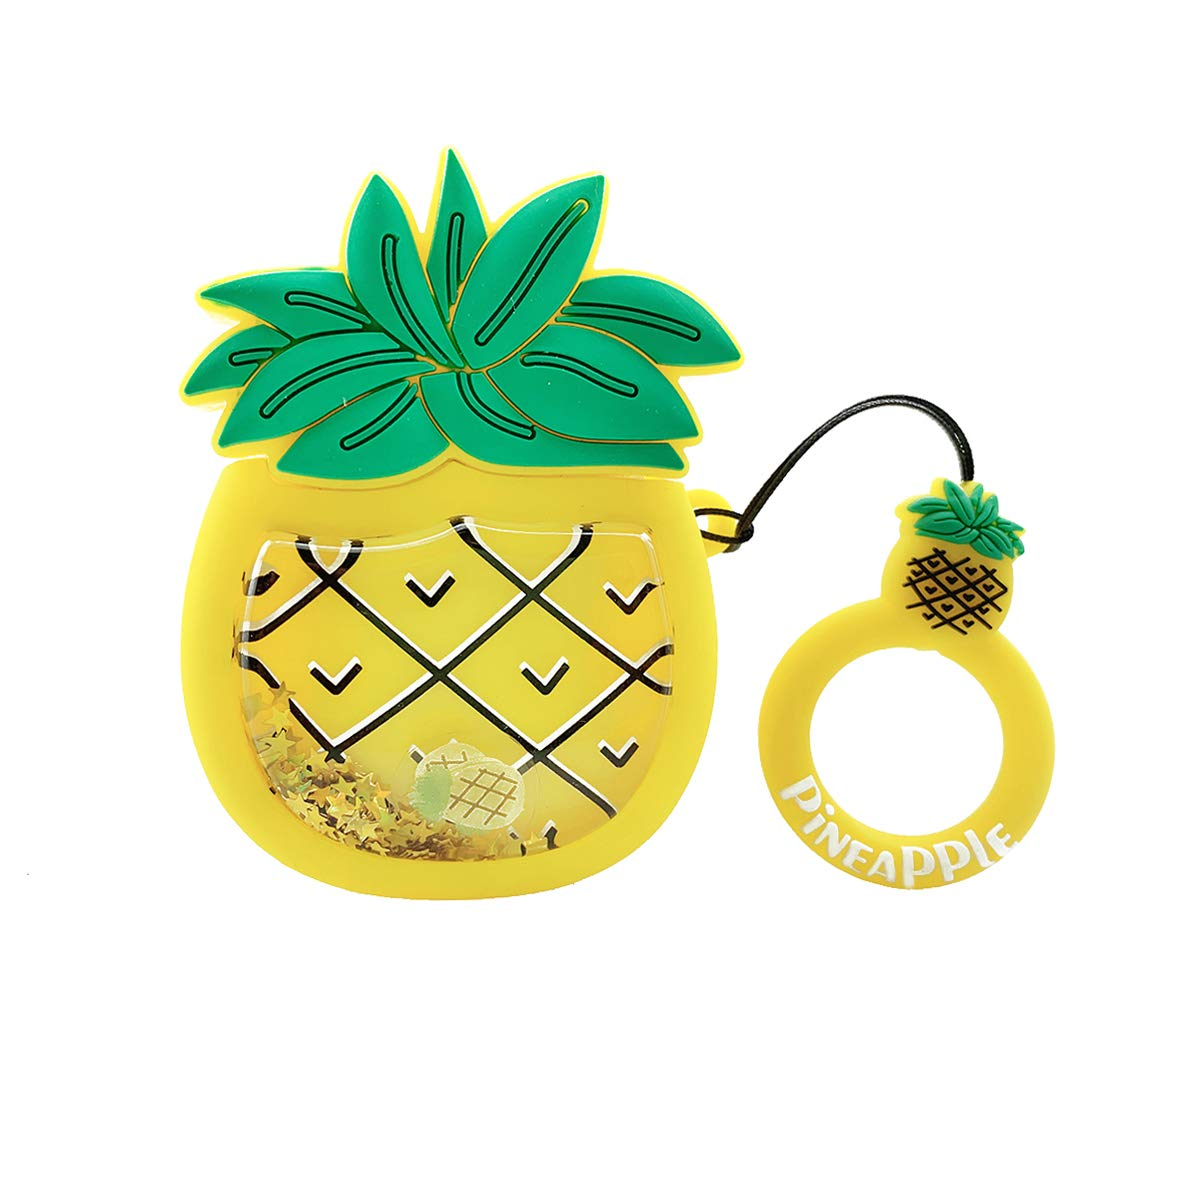 MOLOVA Case for Airpods 1&2,Silicone 3D Cute Funny Bling Glitter Cartoon Kawaii Fruit Airpods Cover Shock Proof Compatiable with Wireless Charging Case with Ring Rope Keychain(Quicksand Pineapple)